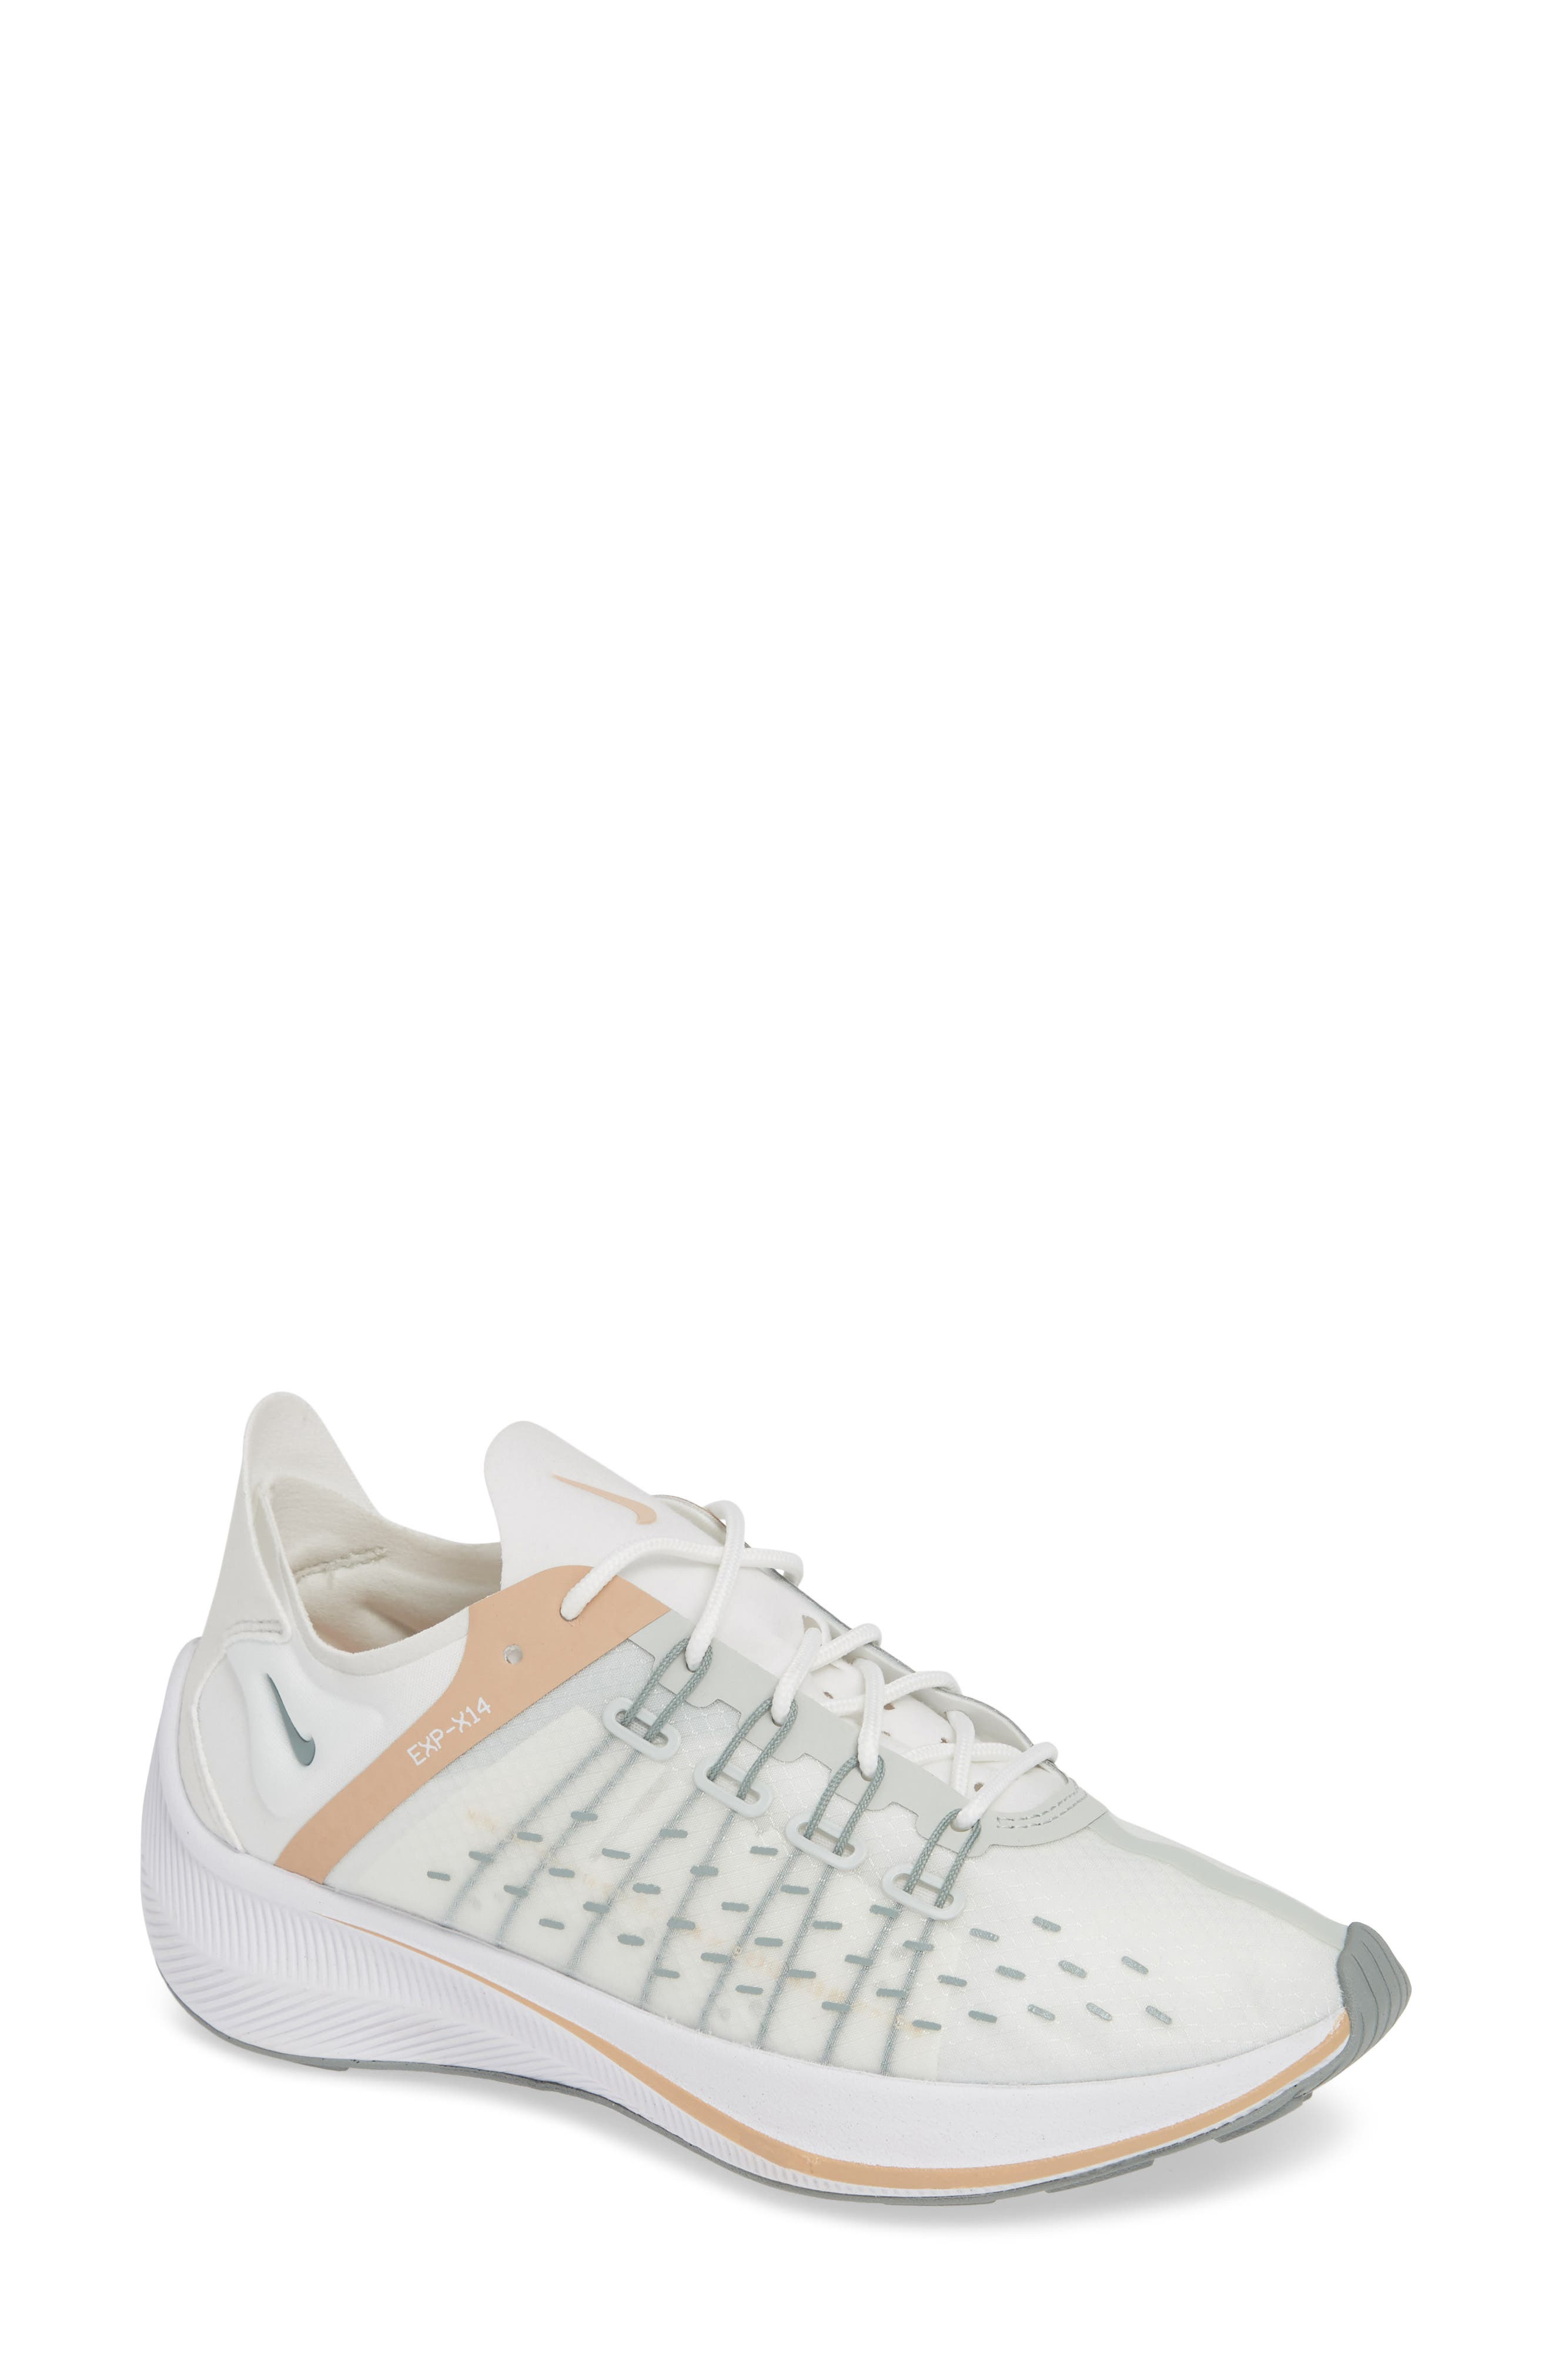 EXP-X14 Sneaker,                         Main,                         color, SUMMIT WHITE/ LIGHT SILVER